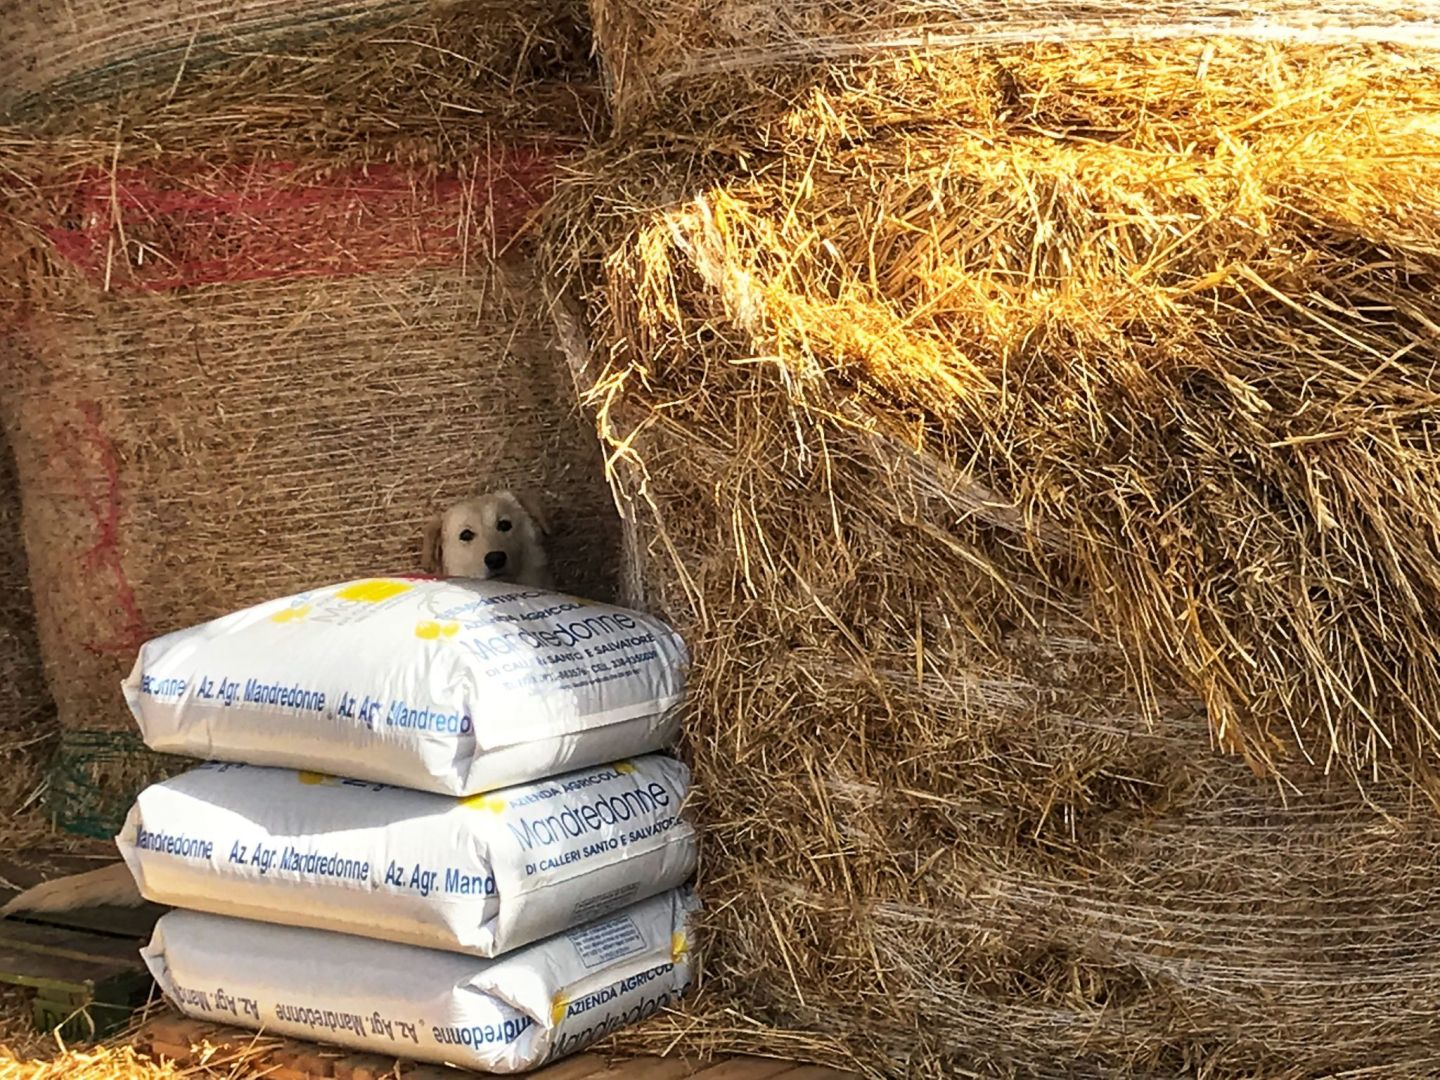 dog hiding among hay bales